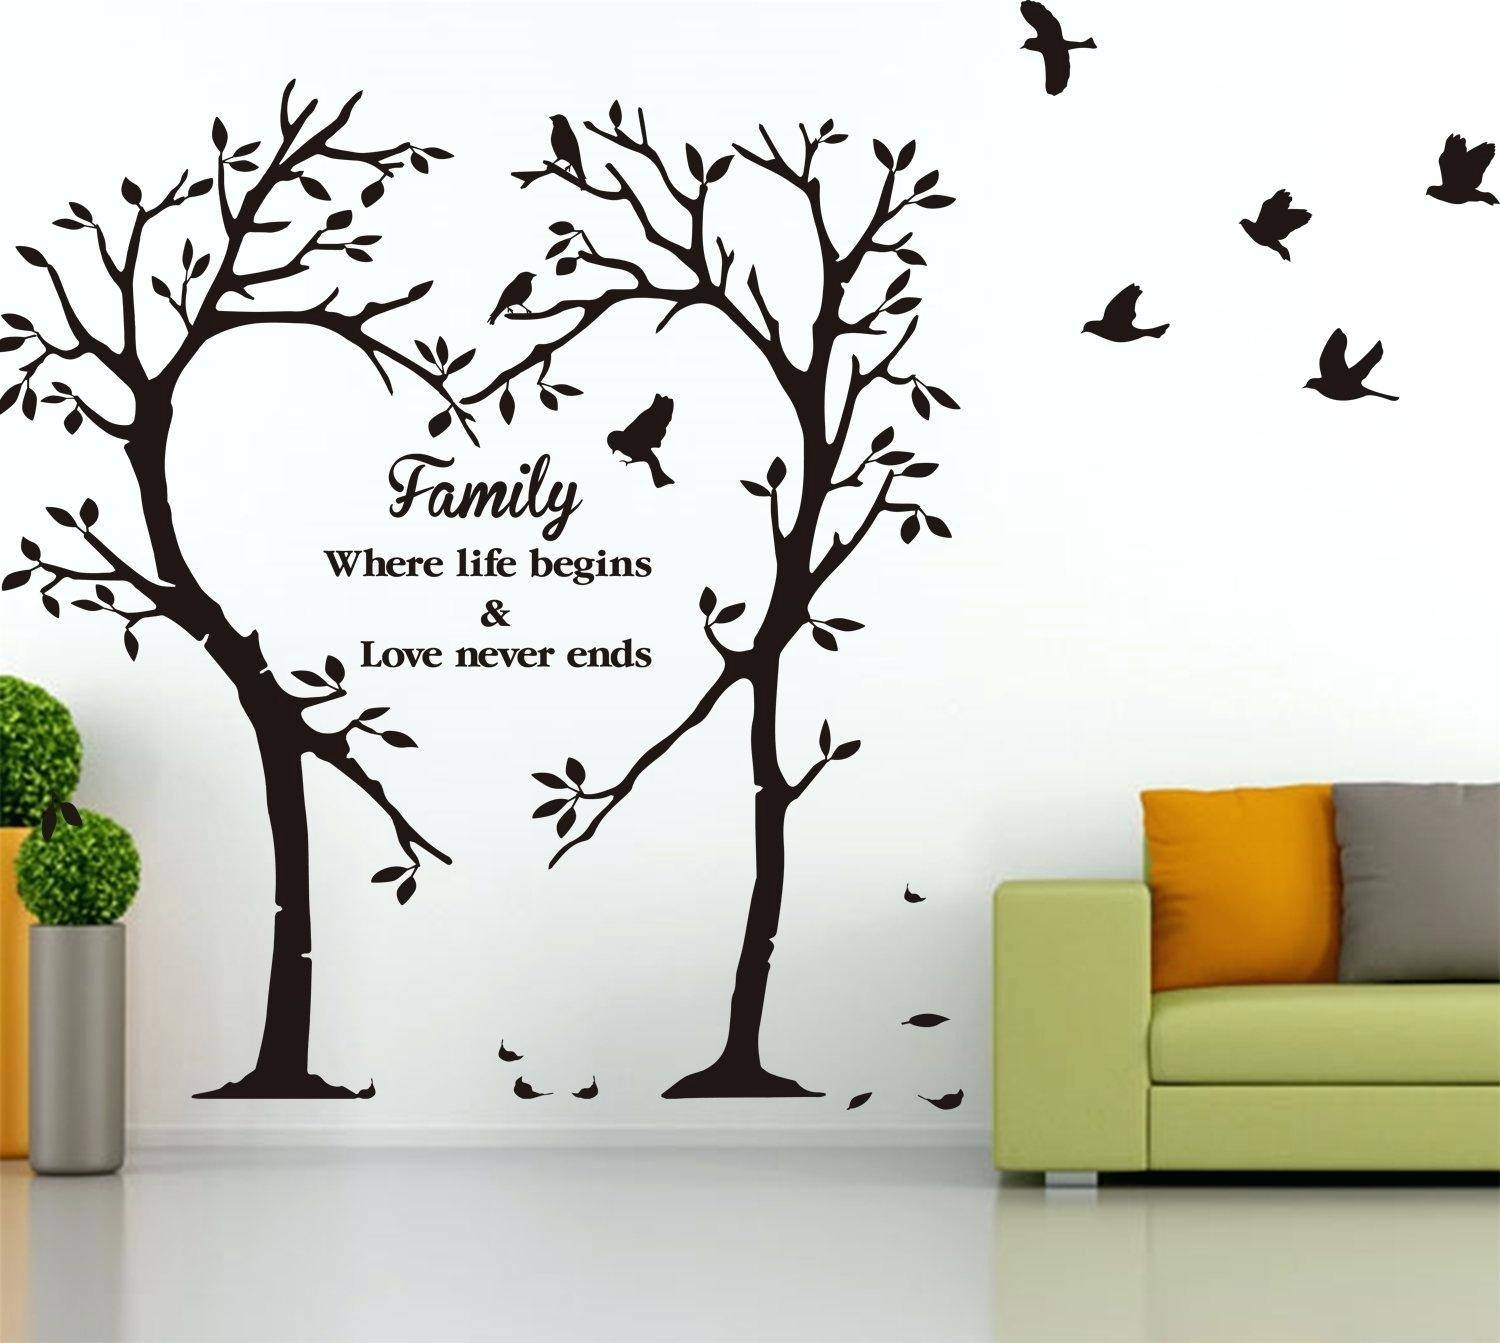 Vinyl Wall Decals Family Tree Wall Ideas Palm Tree Wall Art Decals Intended For 2017 Vinyl Wall Art Tree (Gallery 16 of 20)